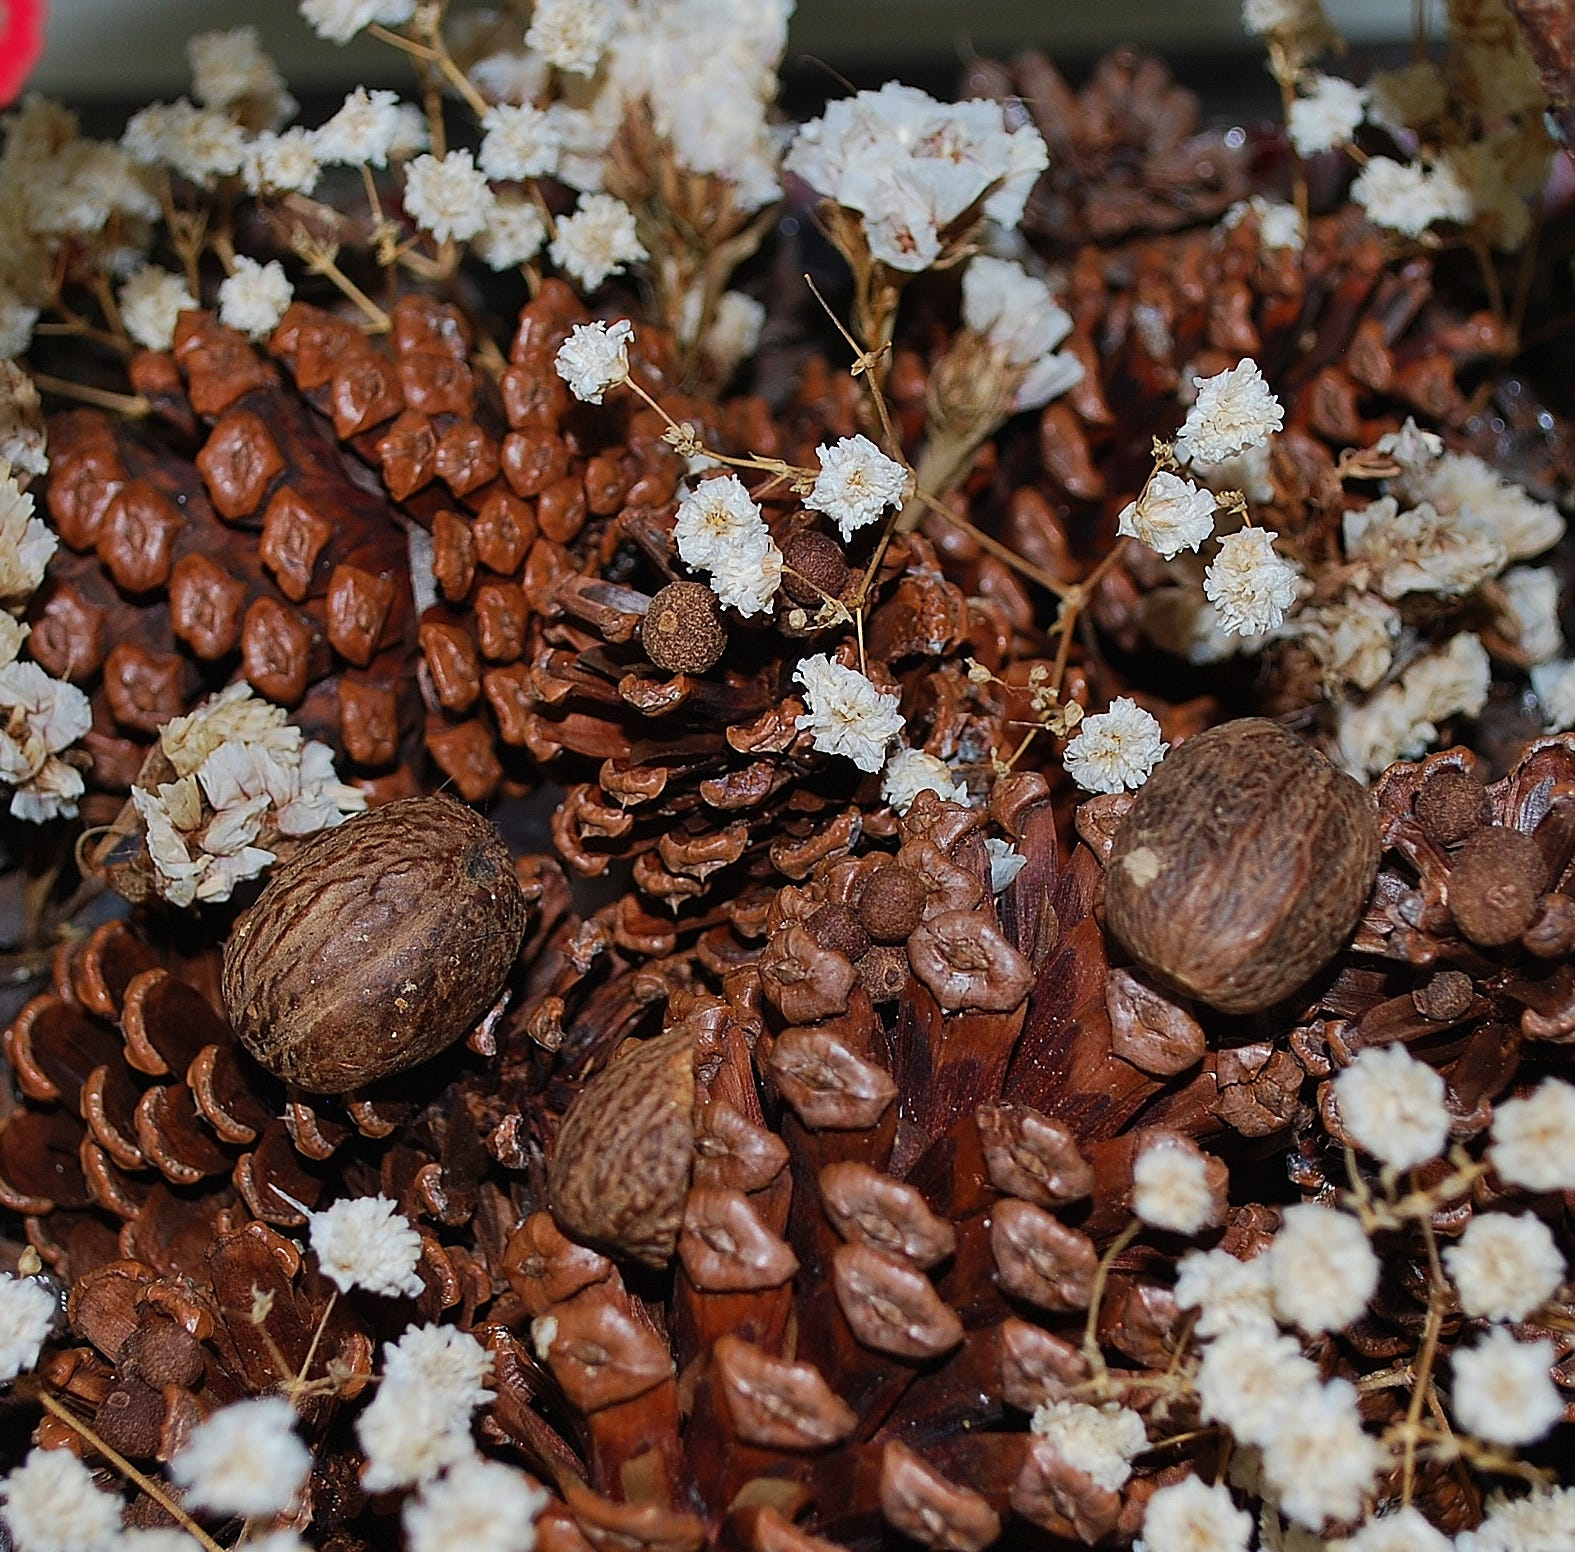 Use spices and pine cones to make homemade holiday gifts